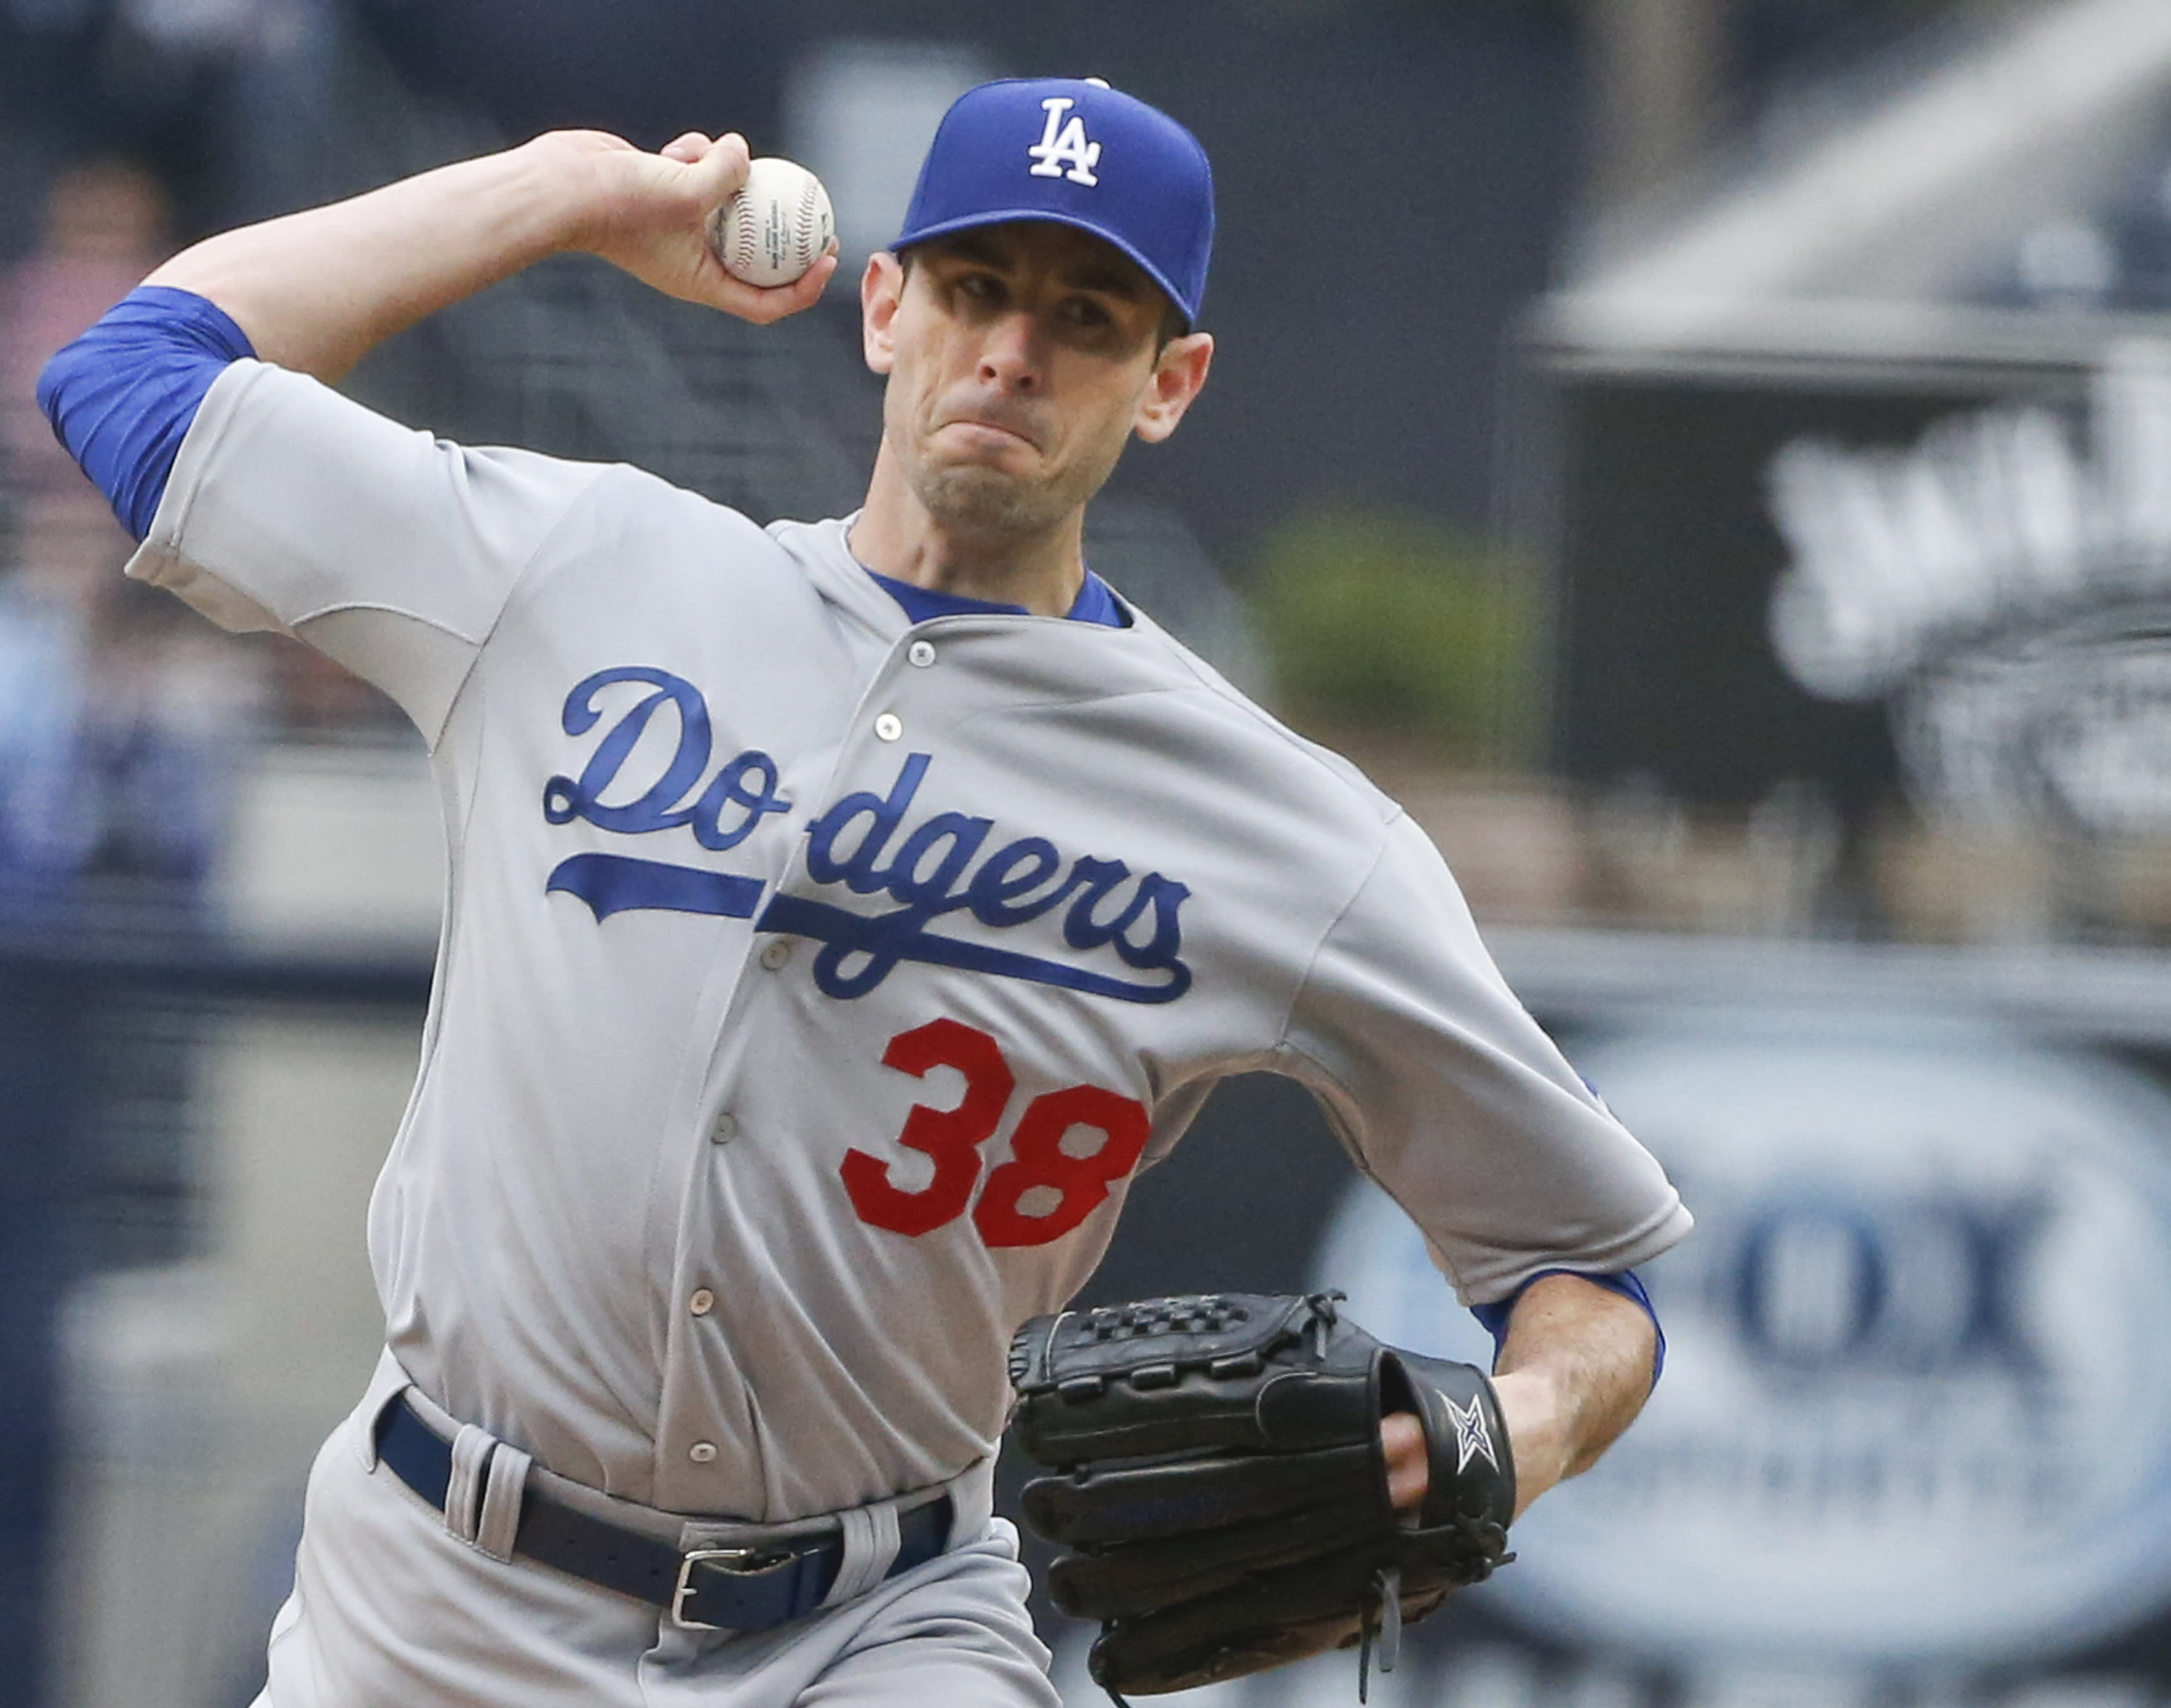 Dodgers pitcher McCarthy out for season with elbow injury